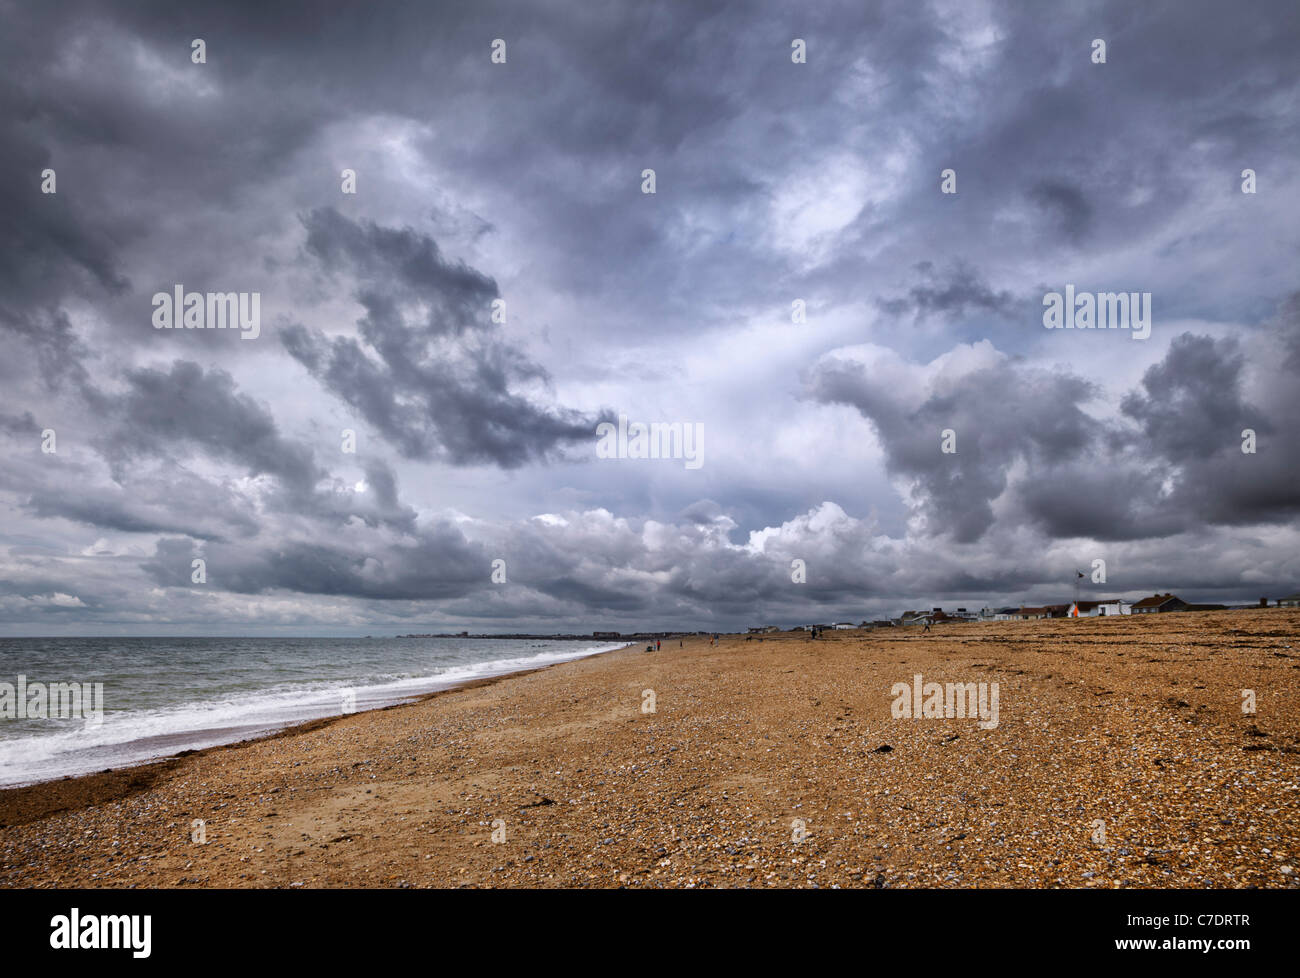 Stormy sky over the shingle beach at Shoreham-by-Sea, Sussex, England. - Stock Image